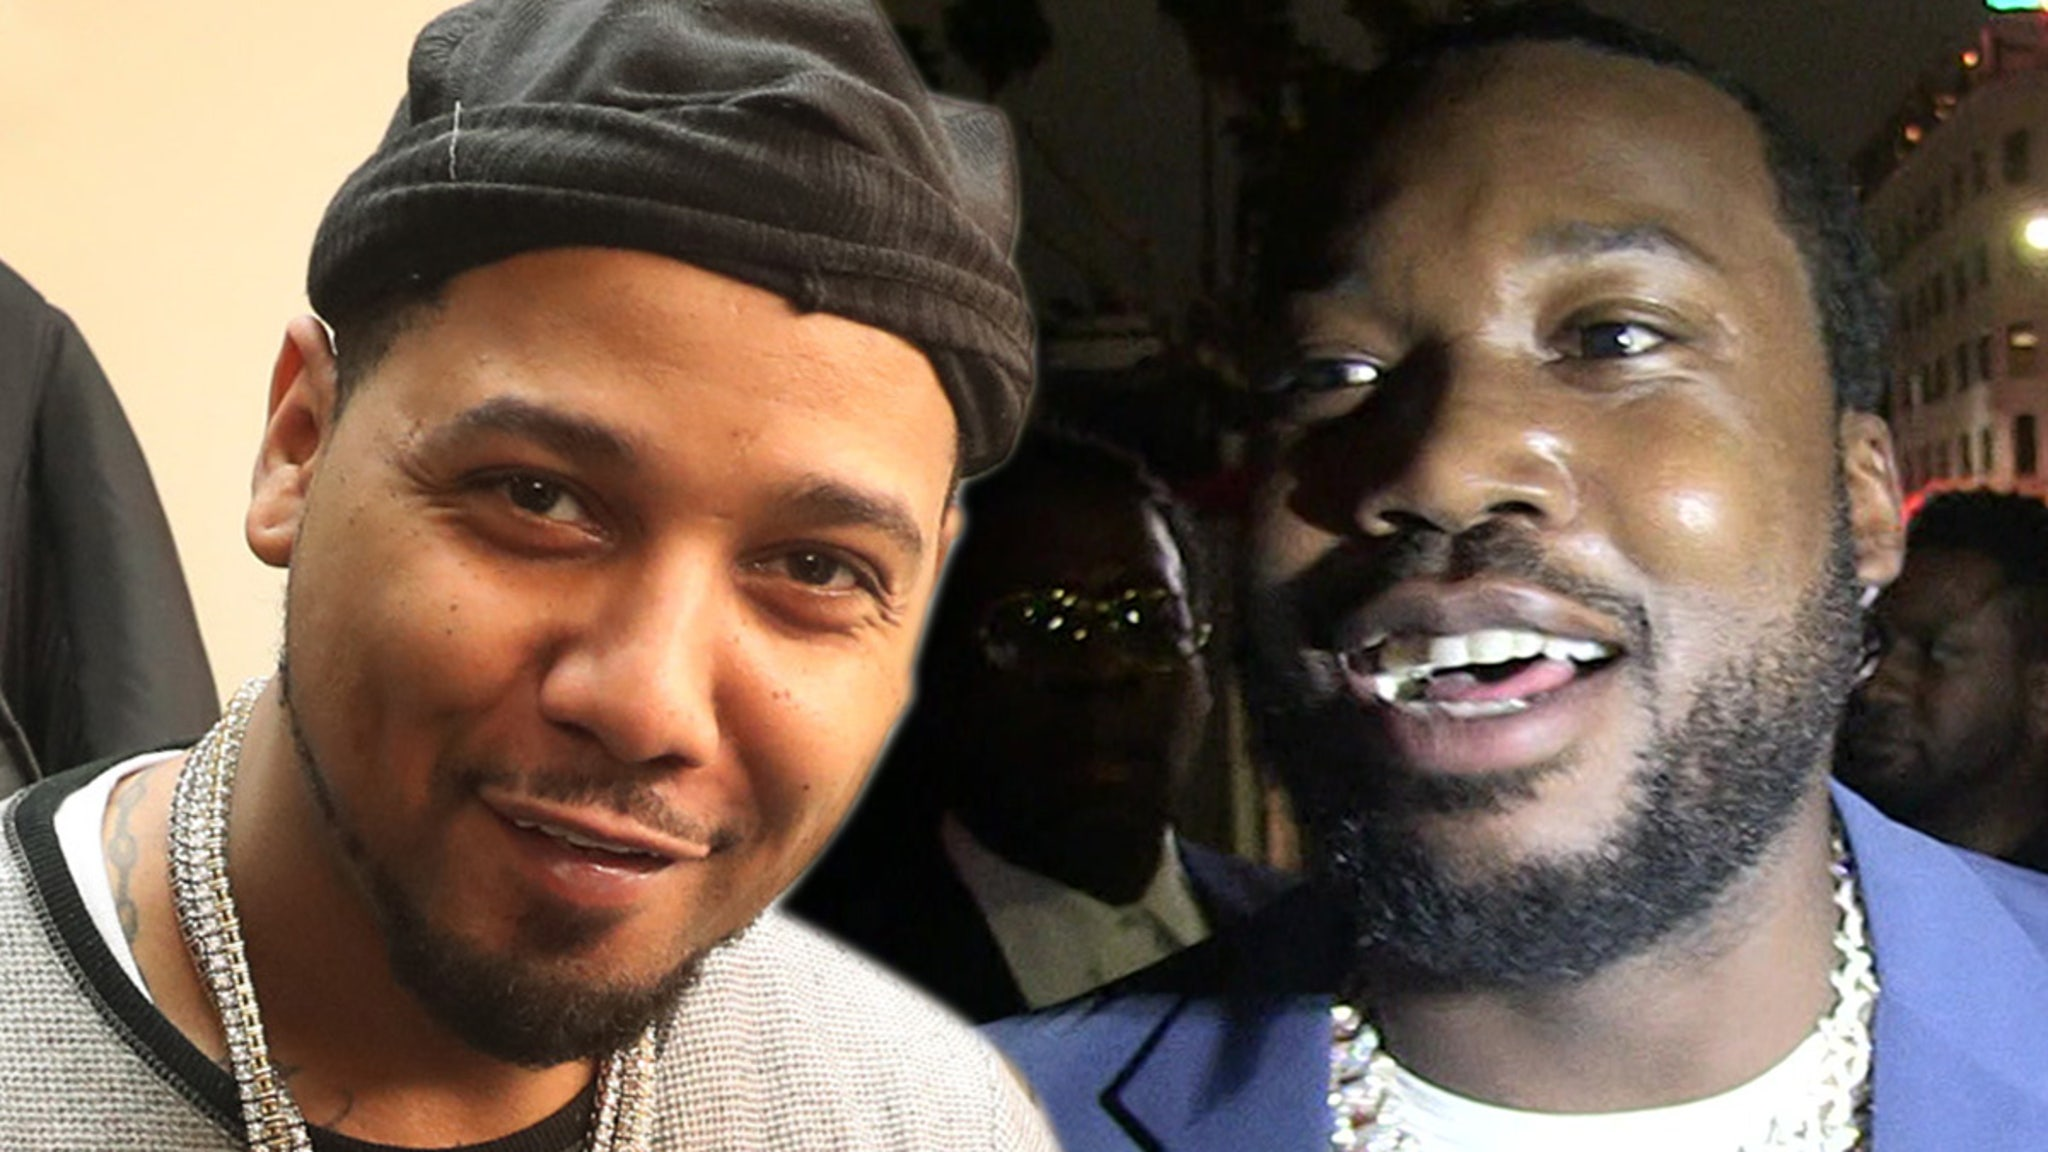 Juelz Santana's Prison Release Assisted By Meek Mill thumbnail